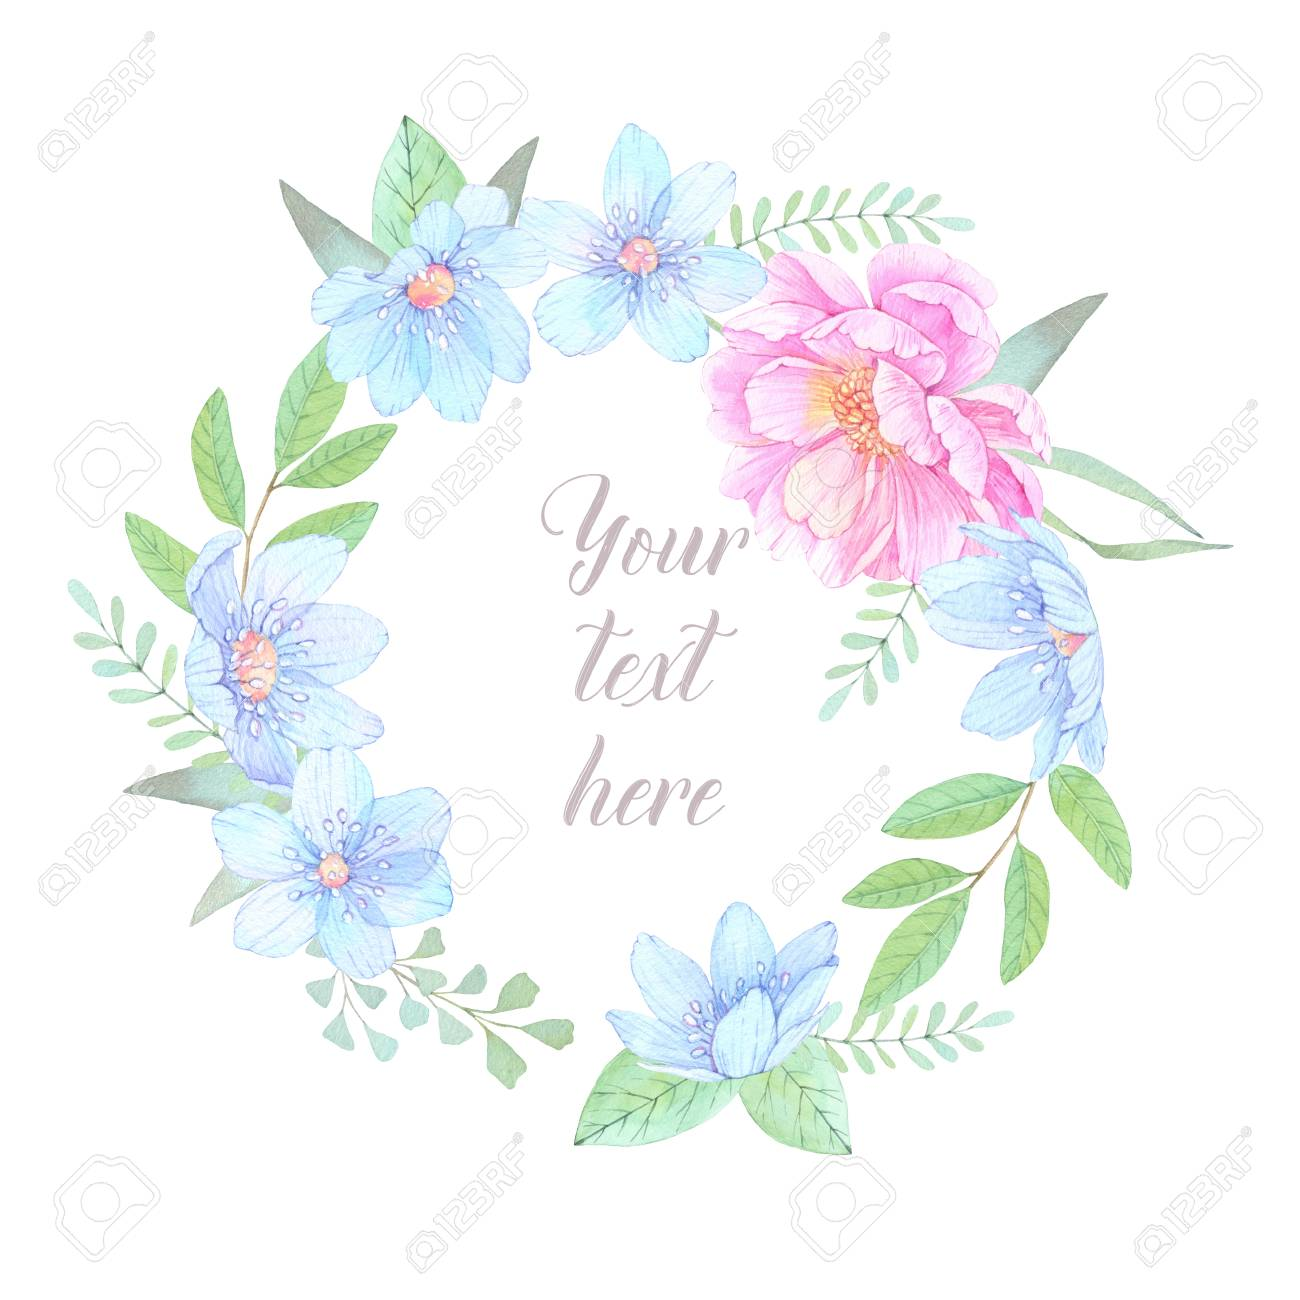 Watercolor illustration floral wreath with leaves peonies and blue floral wreath with leaves peonies and blue flowers perfect for wedding invitation or greeting card ready to use card save the date izmirmasajfo